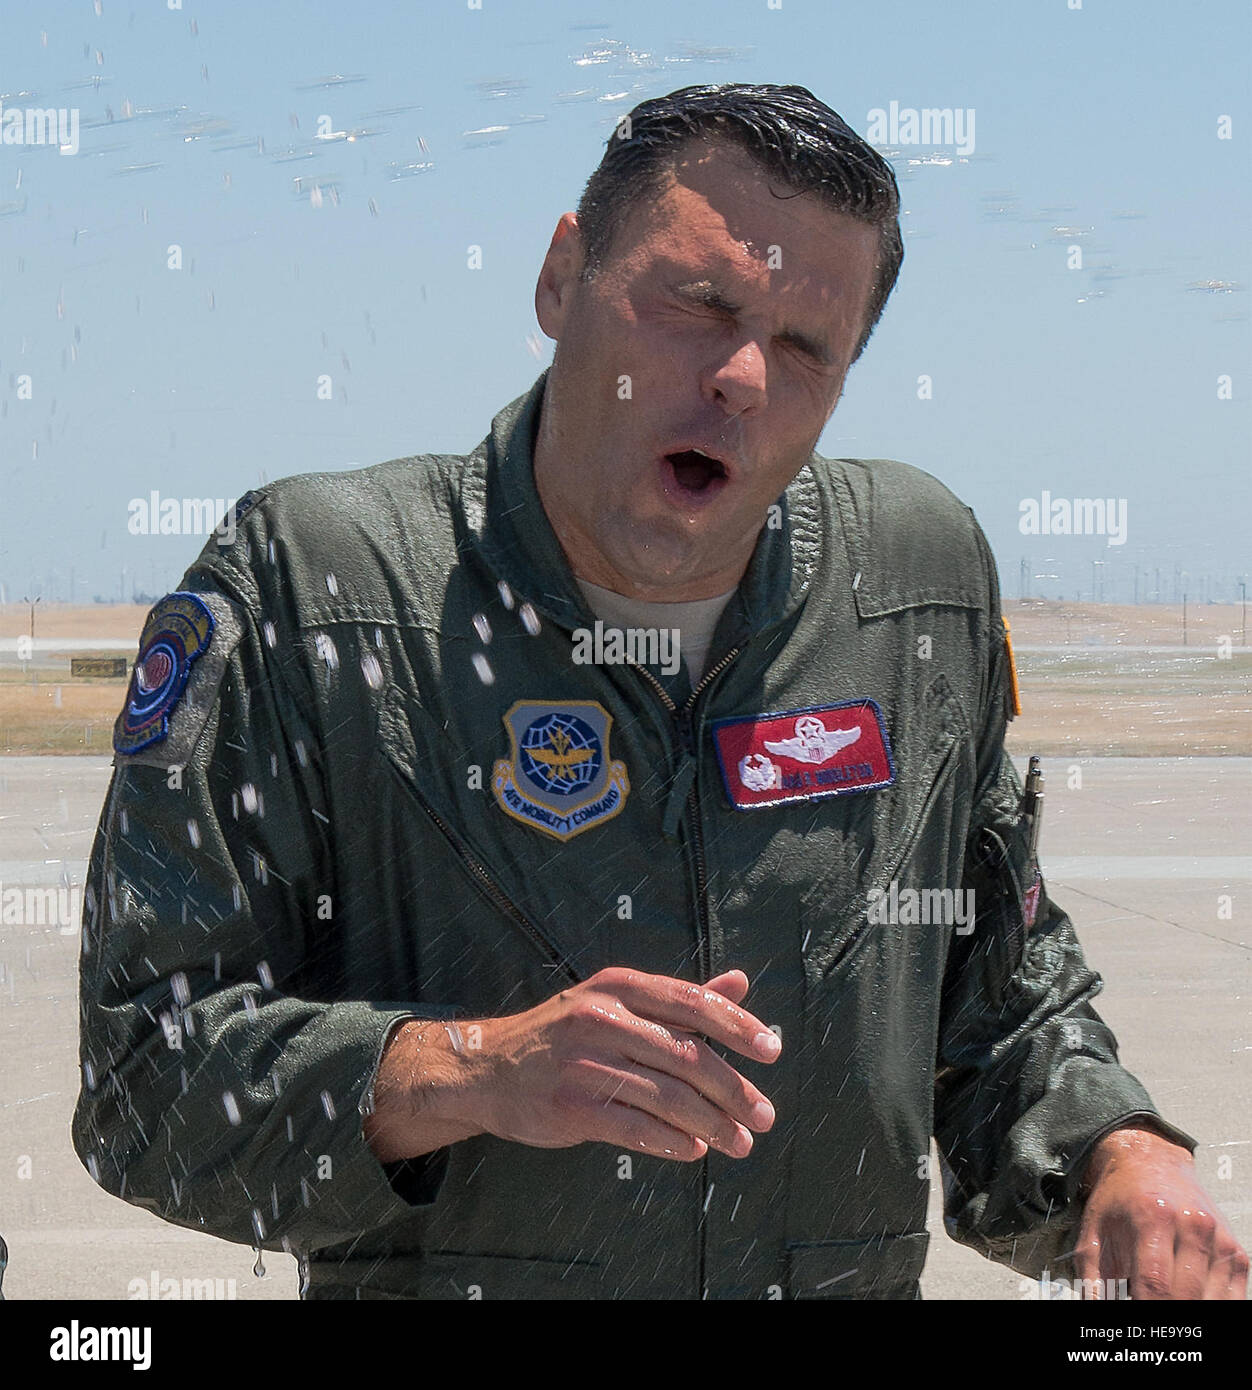 Lt. Col. Thad Middleton, 9 Air Refueling Squadron, commander, gets doused after their final fight mission at Travis - Stock Image